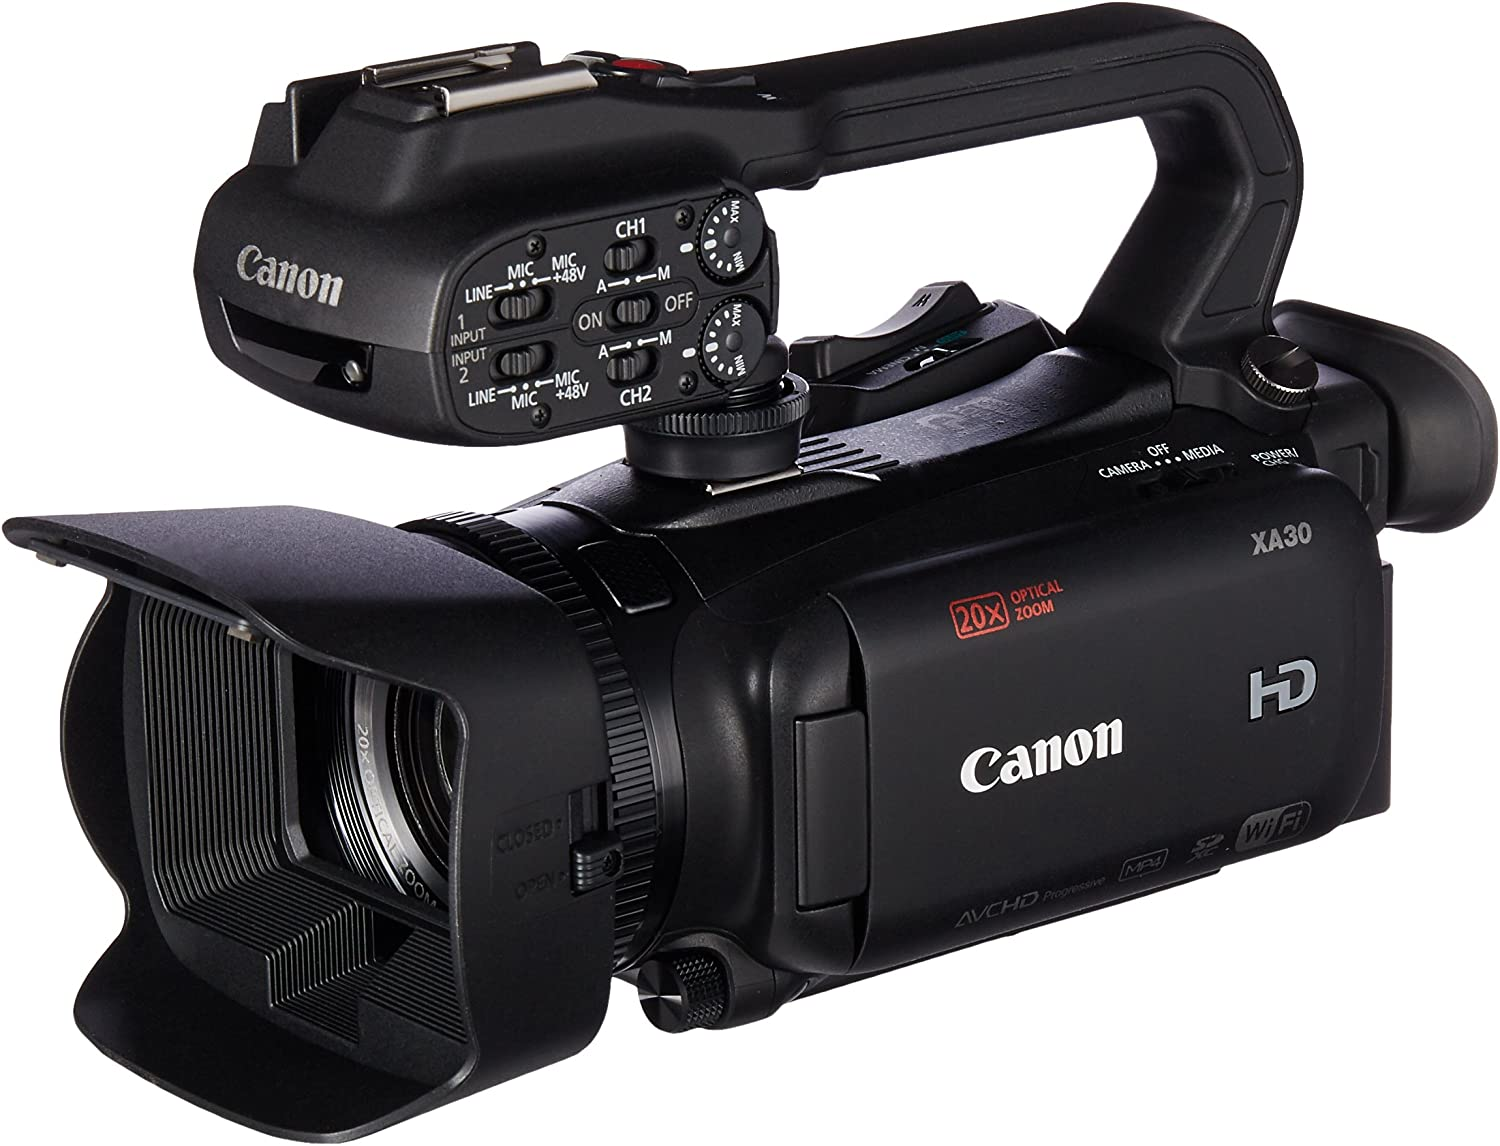 Canon XA30: - Best budget friendly camcorder for movie making